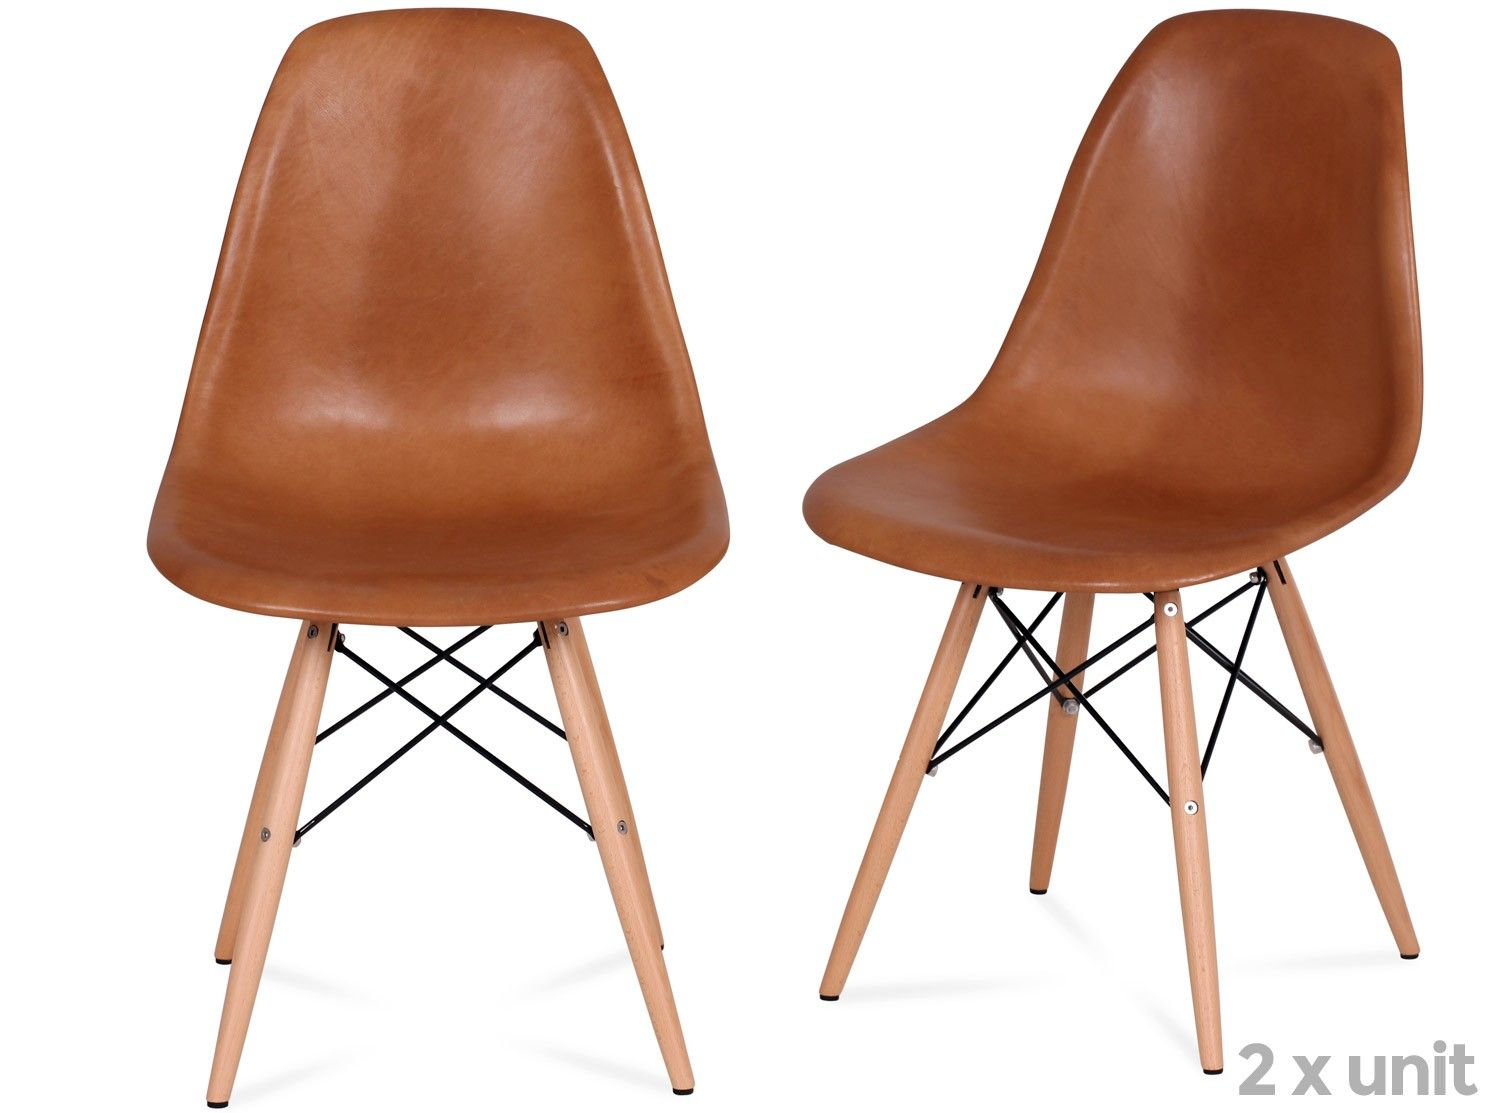 Awe Inspiring Eames Dsw Chair Leather Platinum Replica X2 239 Sale Pdpeps Interior Chair Design Pdpepsorg